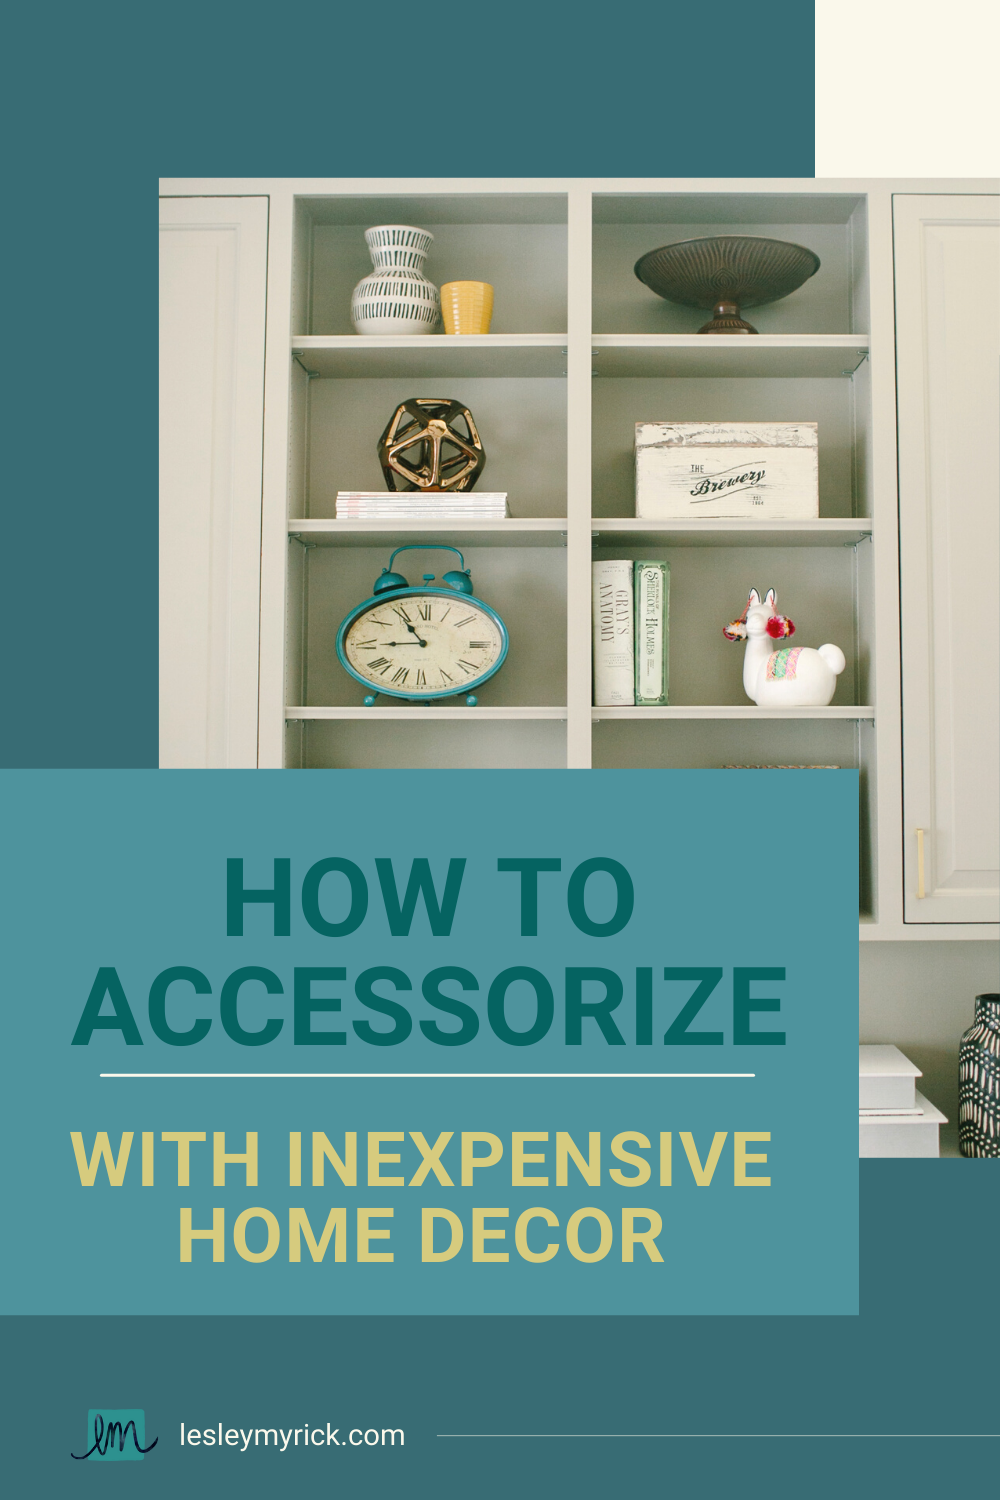 how to accessorize with inexpensive home decor